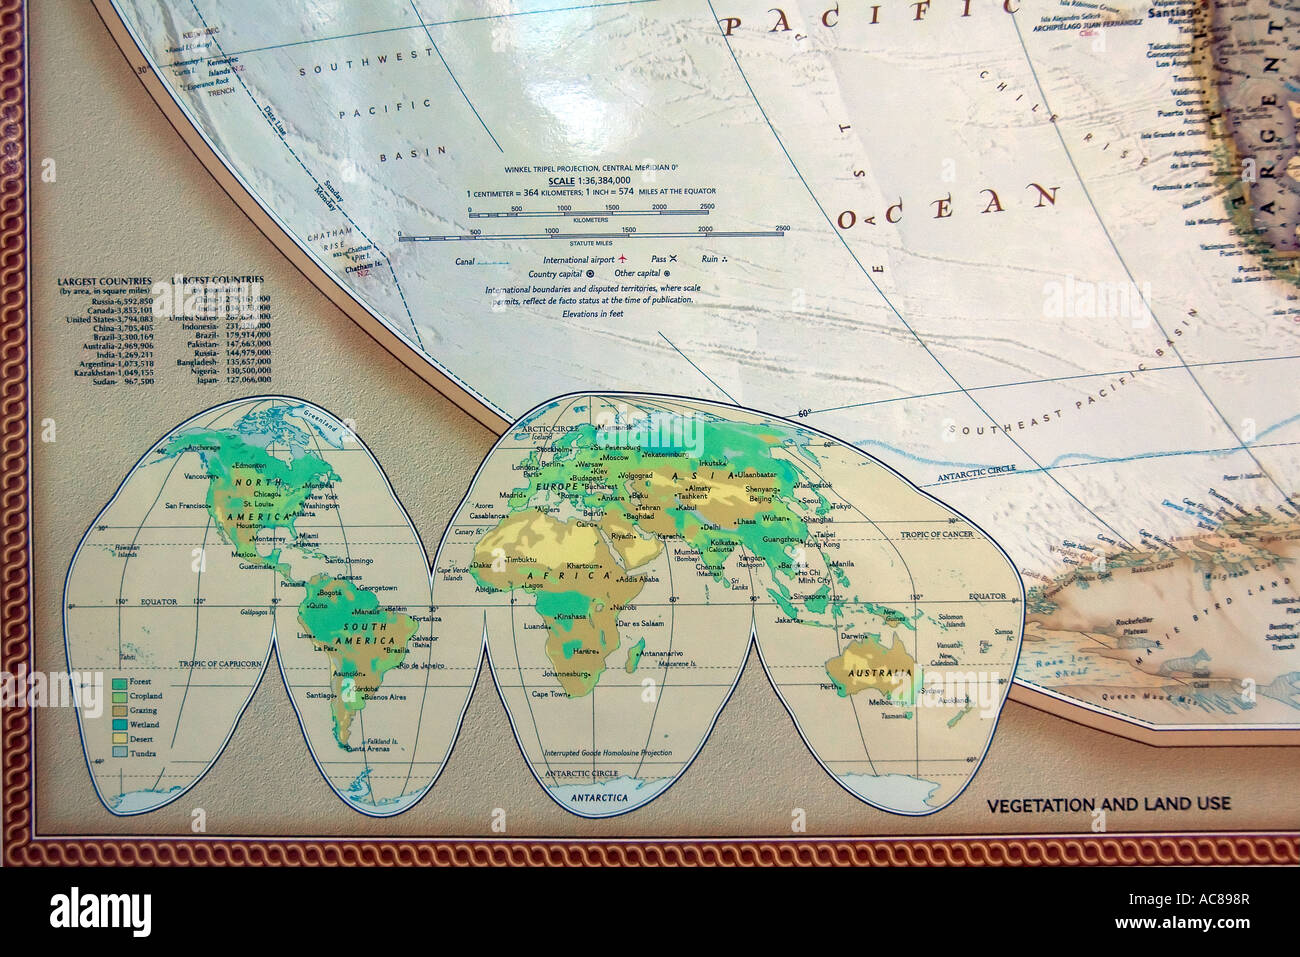 Map legend key stock photos map legend key stock images alamy a view of a corner of a fine detailed and colorful world map showing world gumiabroncs Choice Image